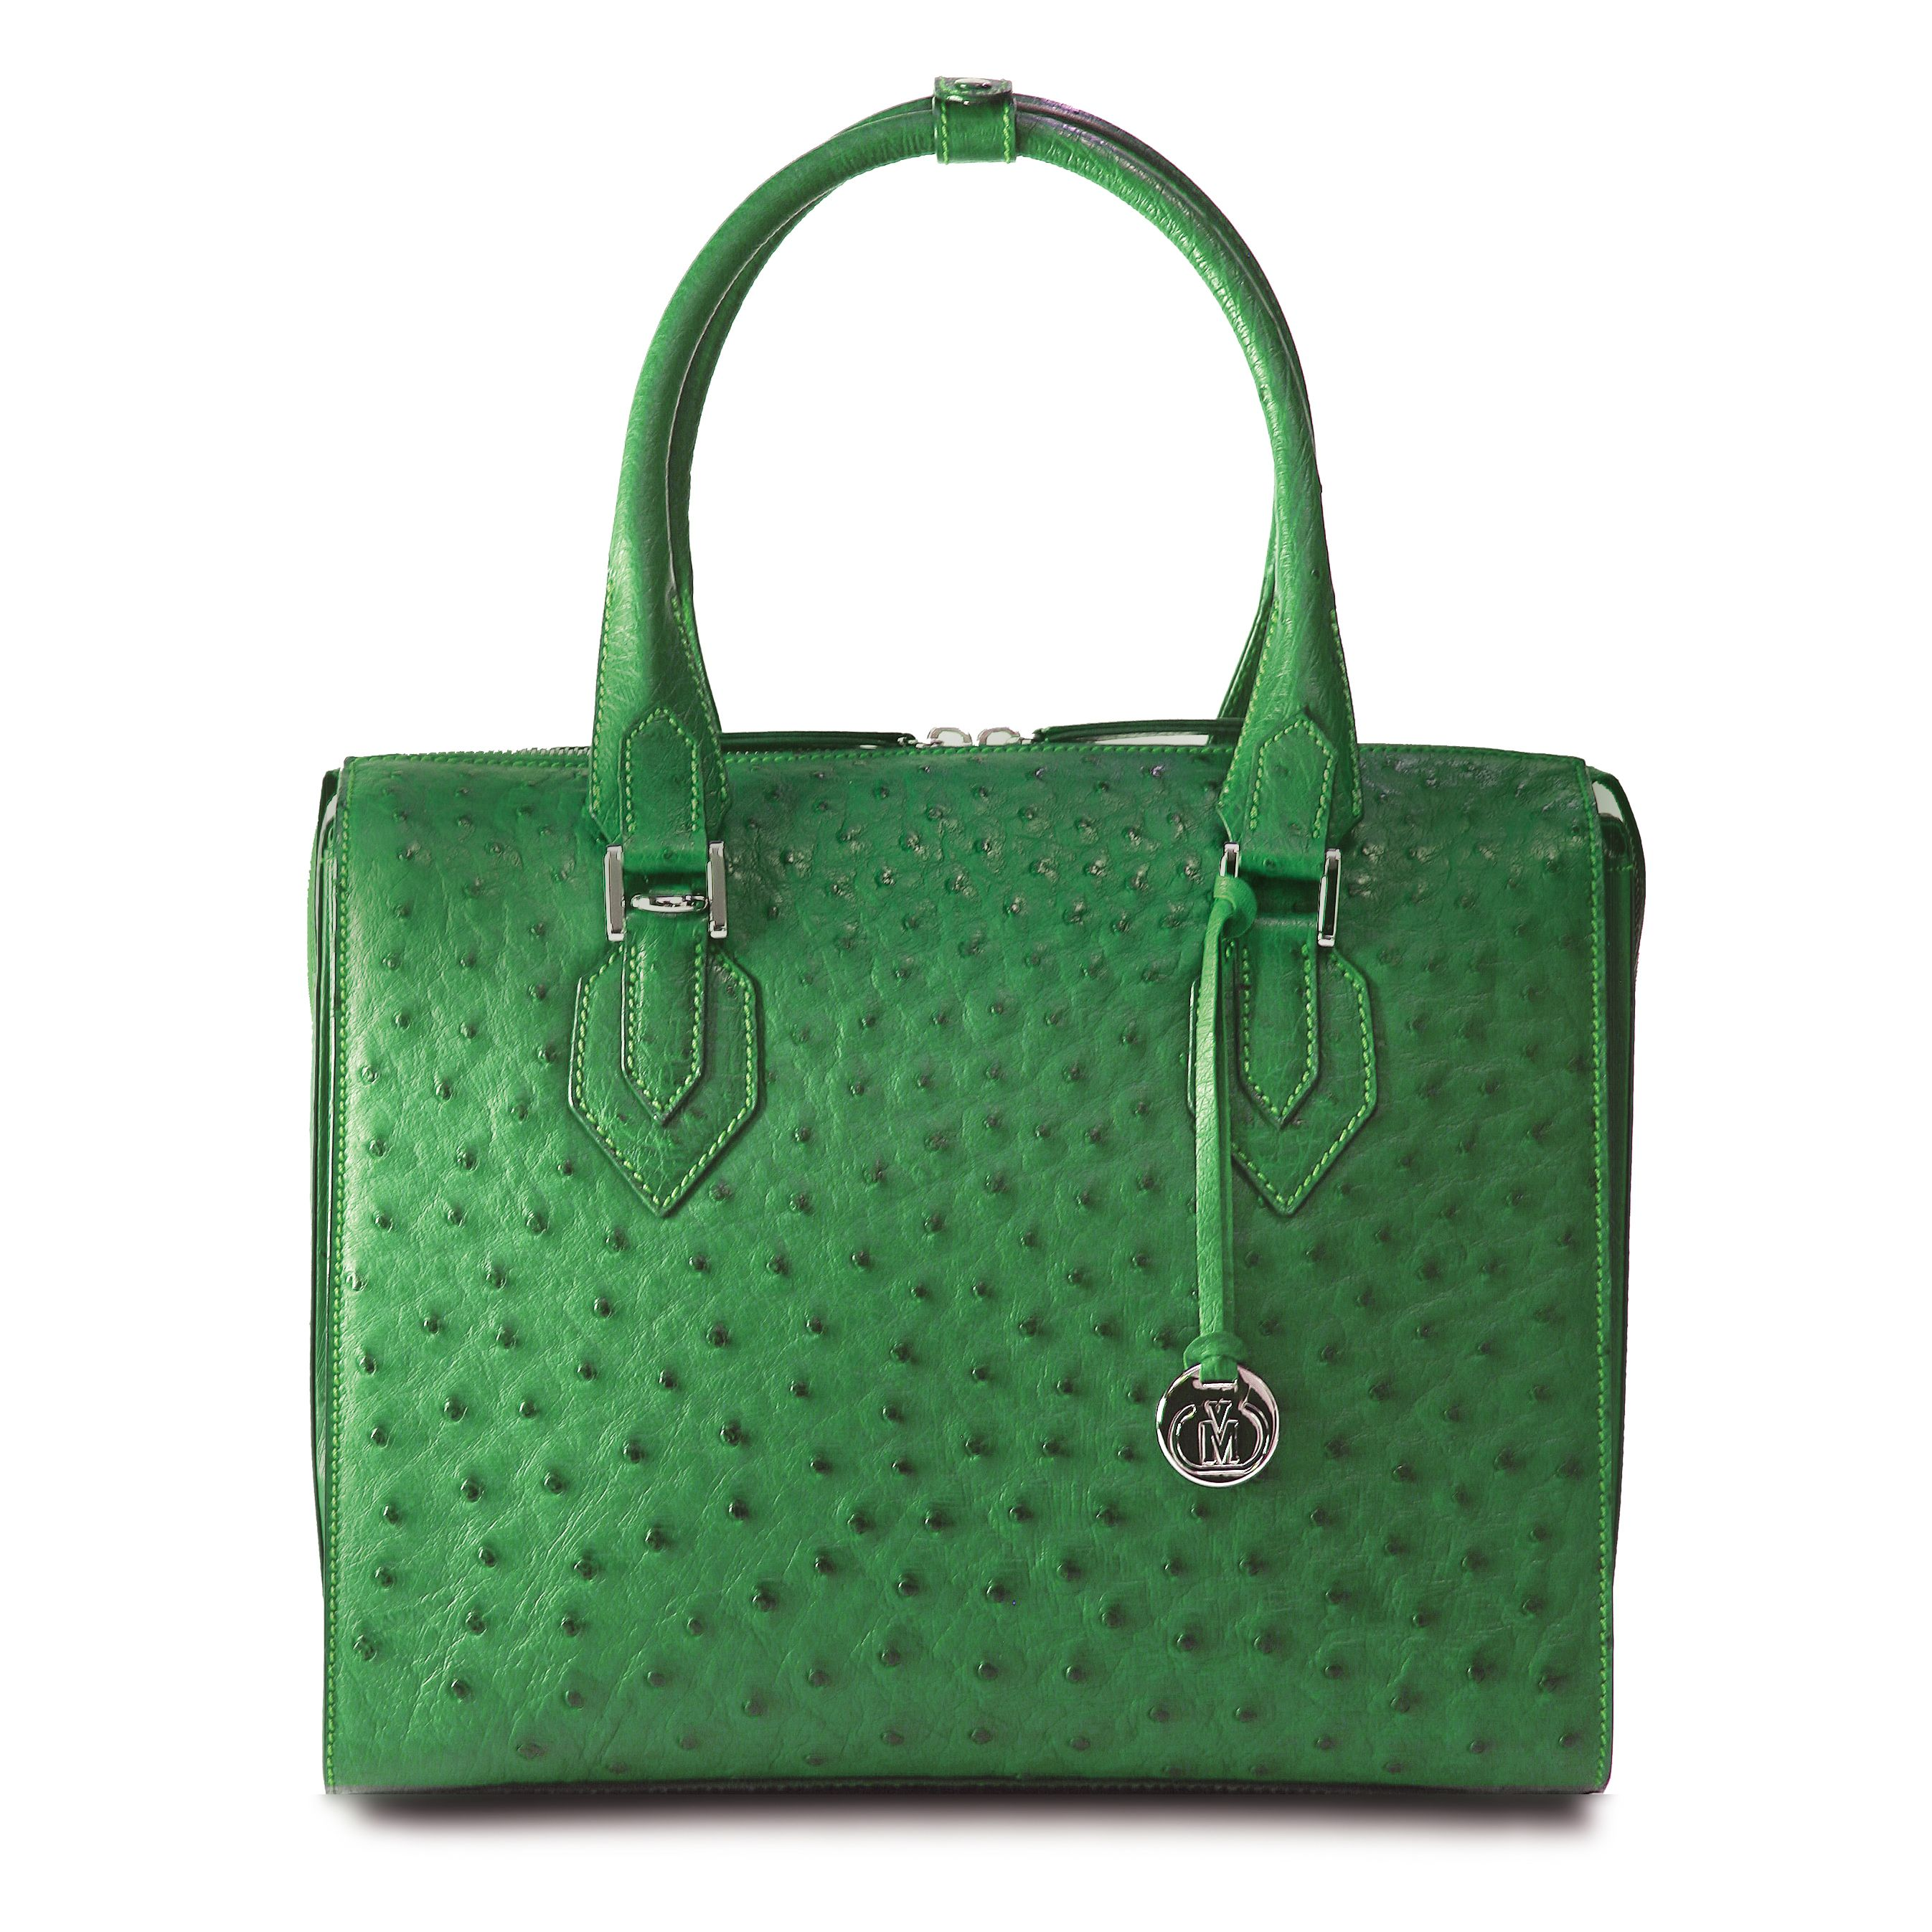 8f4de9ce5413 genuine ostrich leather handbag. made in south africa using ...